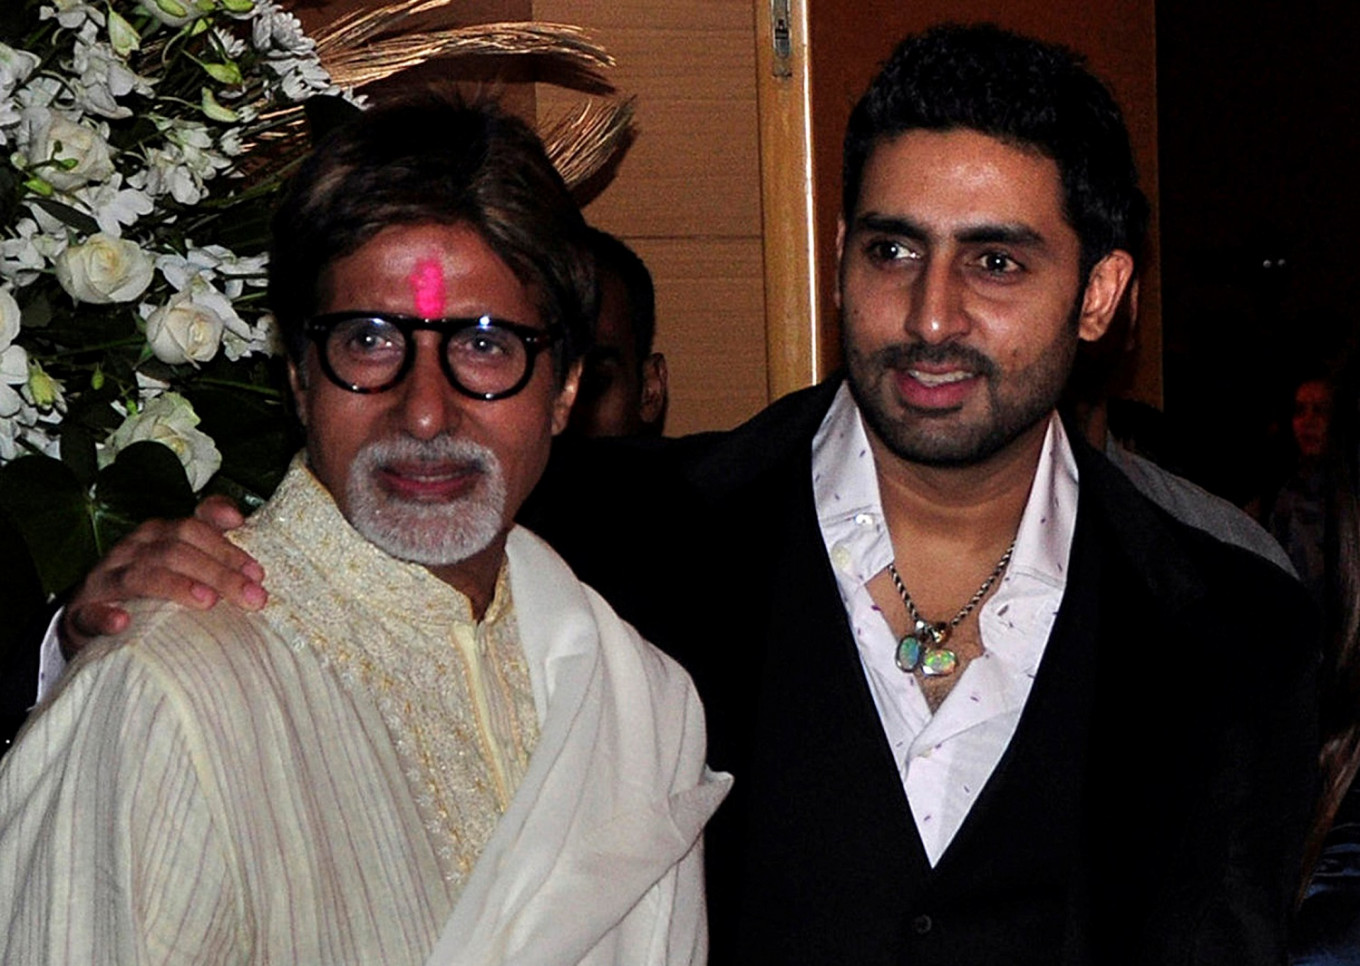 Indian film star Amitabh Bachchan, son in stable condition: Health officials